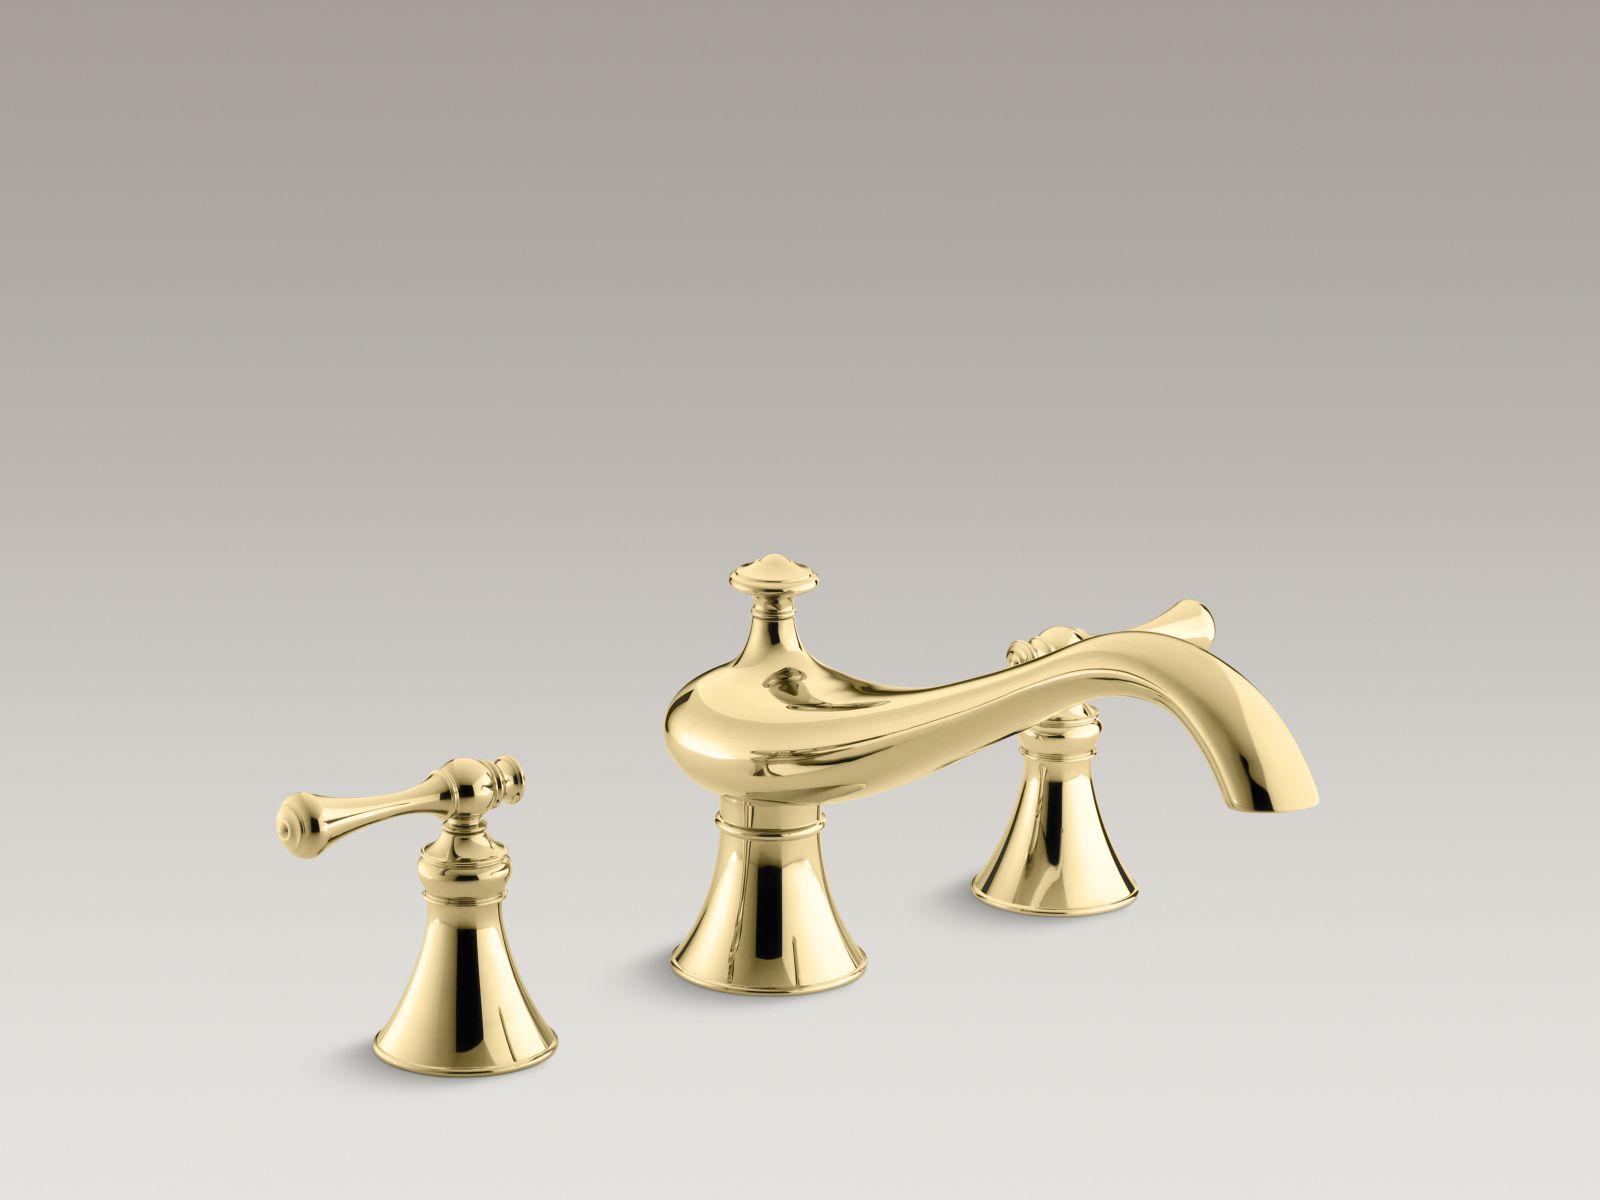 "Kohler Revival® K-T16119-4A-PB Deck-mount bath faucet trim for high-flow valve with 9-5/8"" spout, traditional lever handles, valve not included Vibrant Polished Brass"